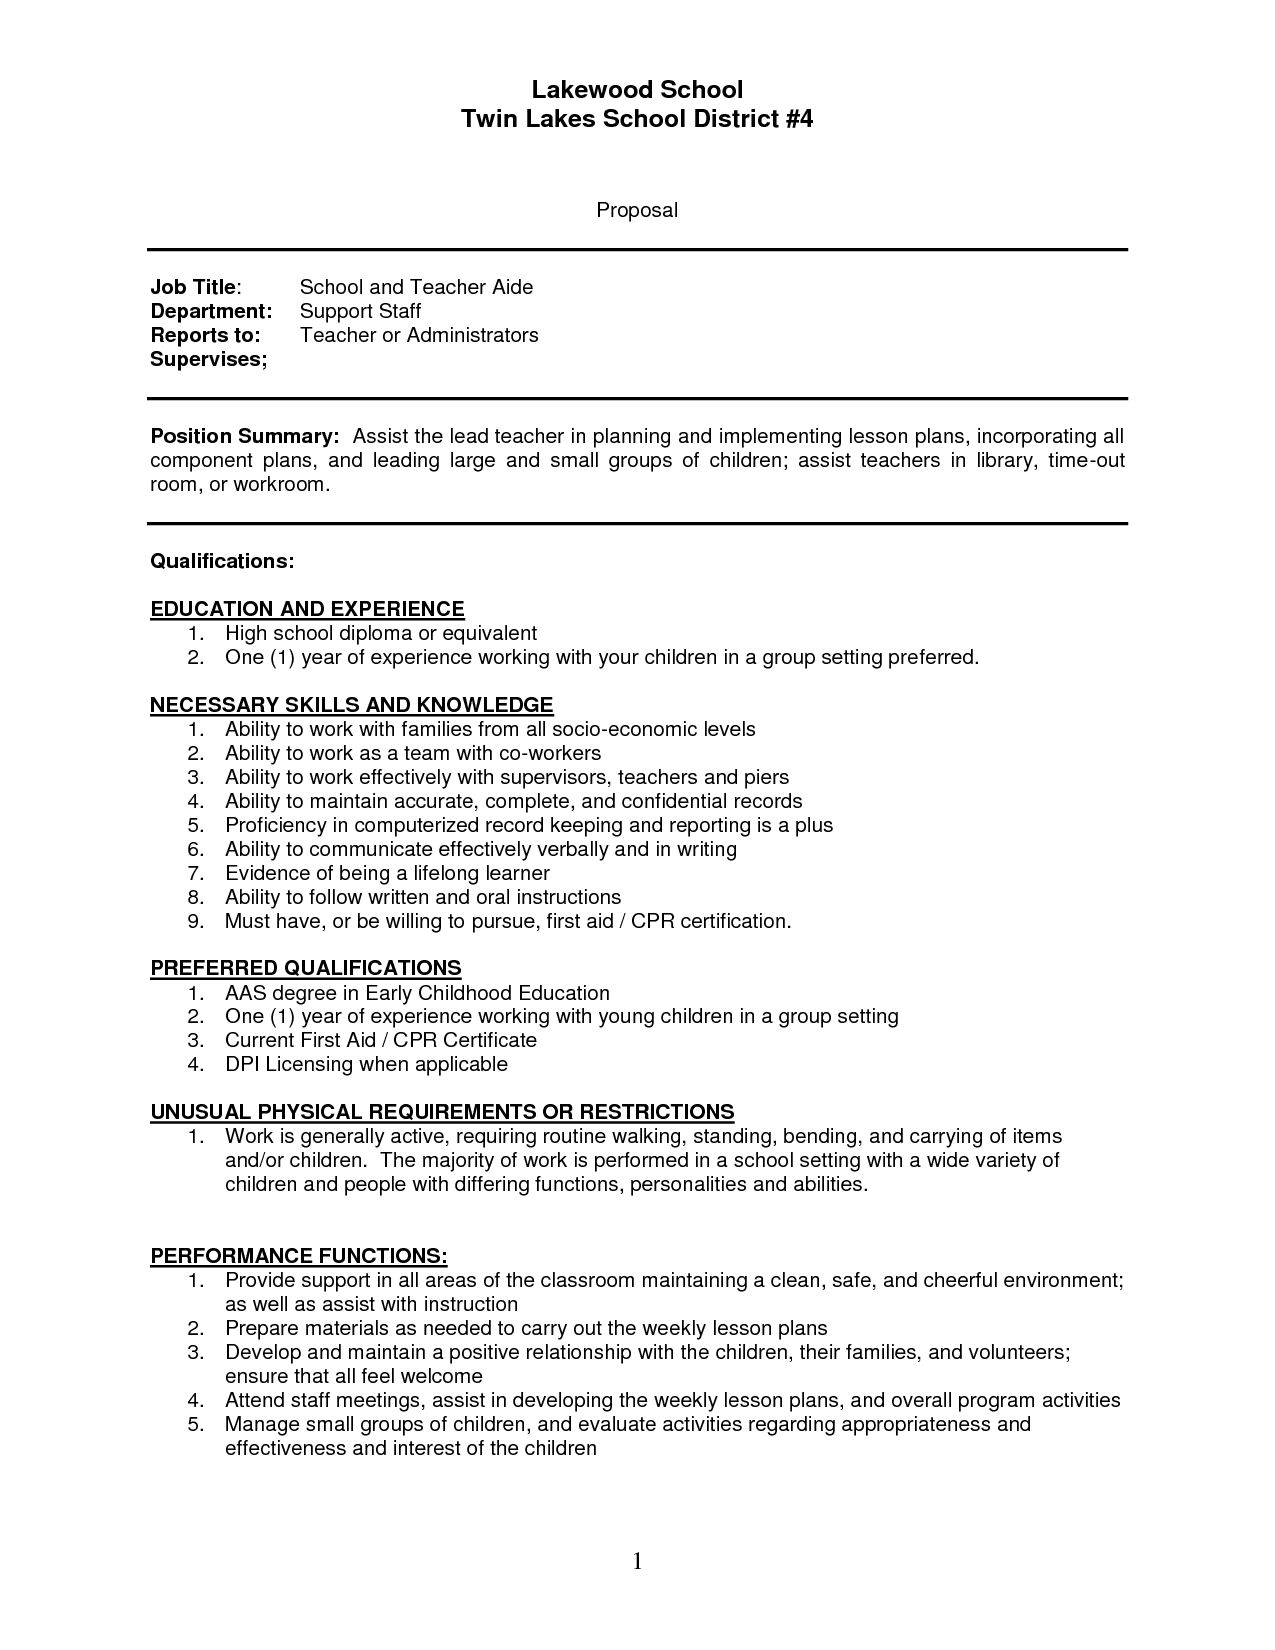 Bsa Analyst Sample Resume Awesome Sample Resume Teachers Aide Assistant Cover Letter Teacher Sap .